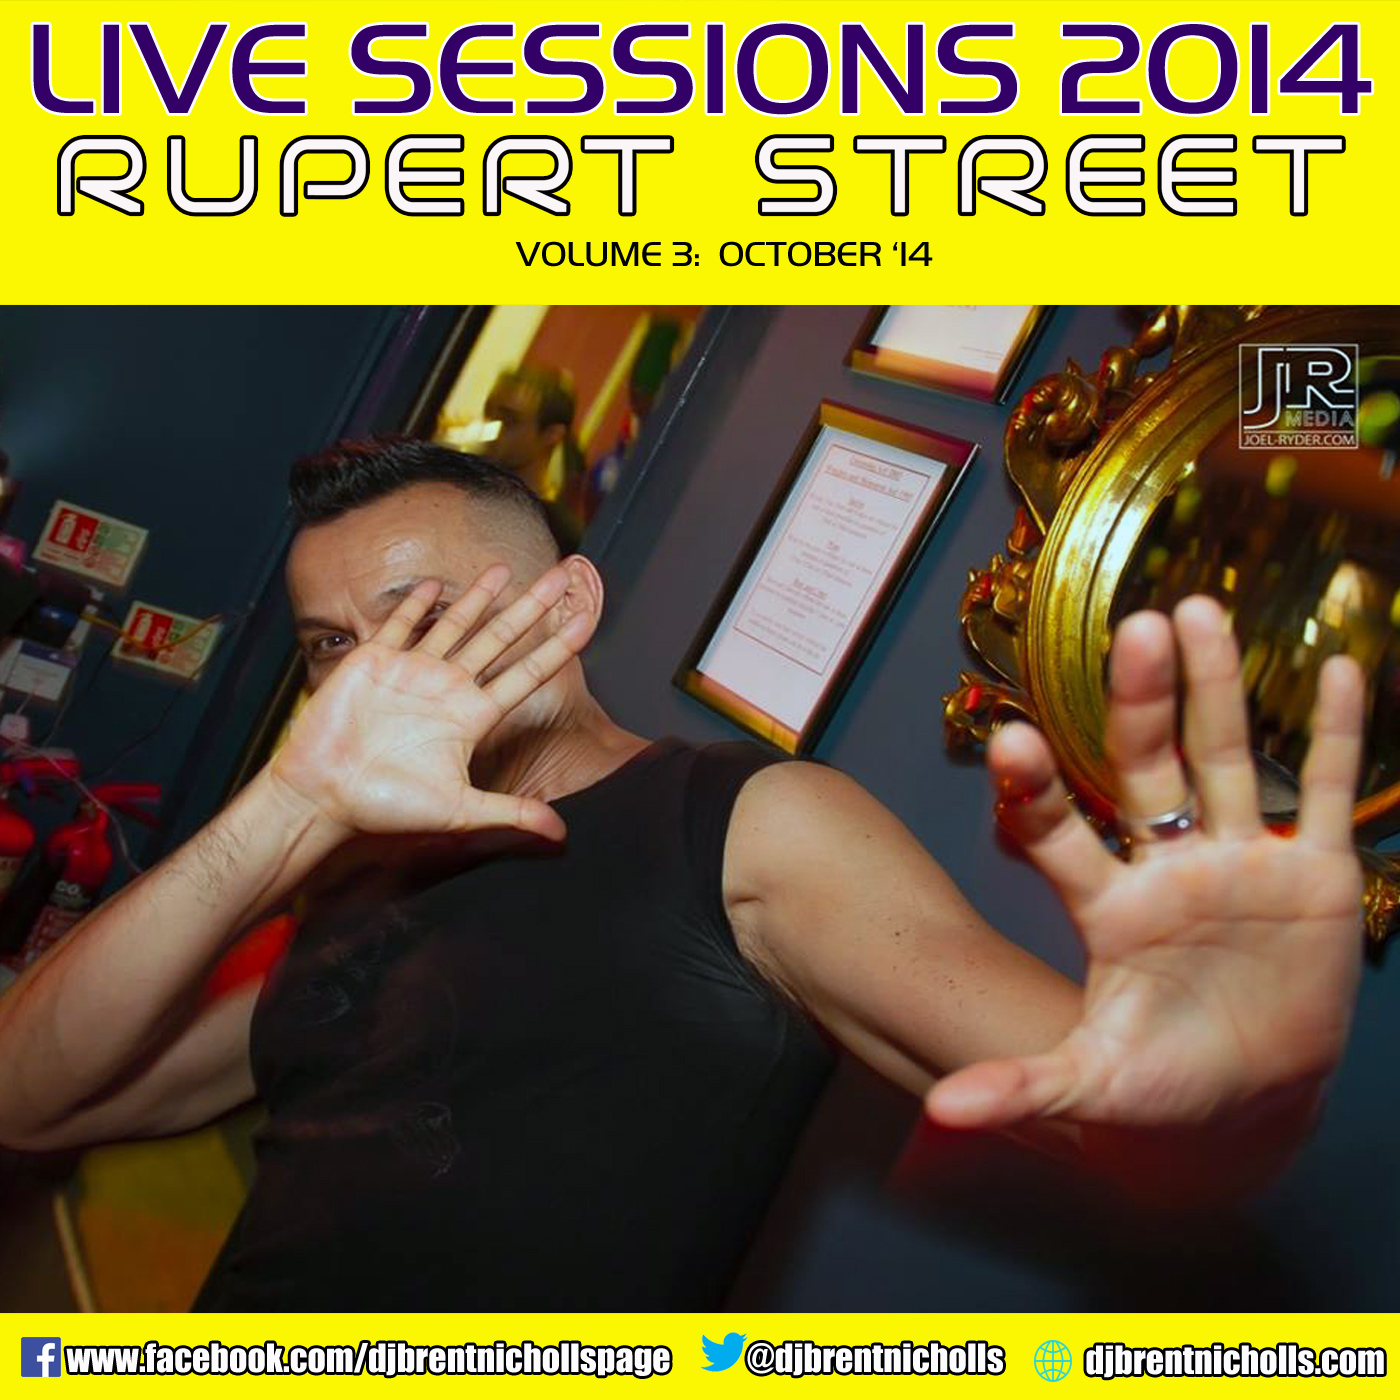 PODCAST: LIVE SESSION 2014- RUPERT STREET (OCT 2014)